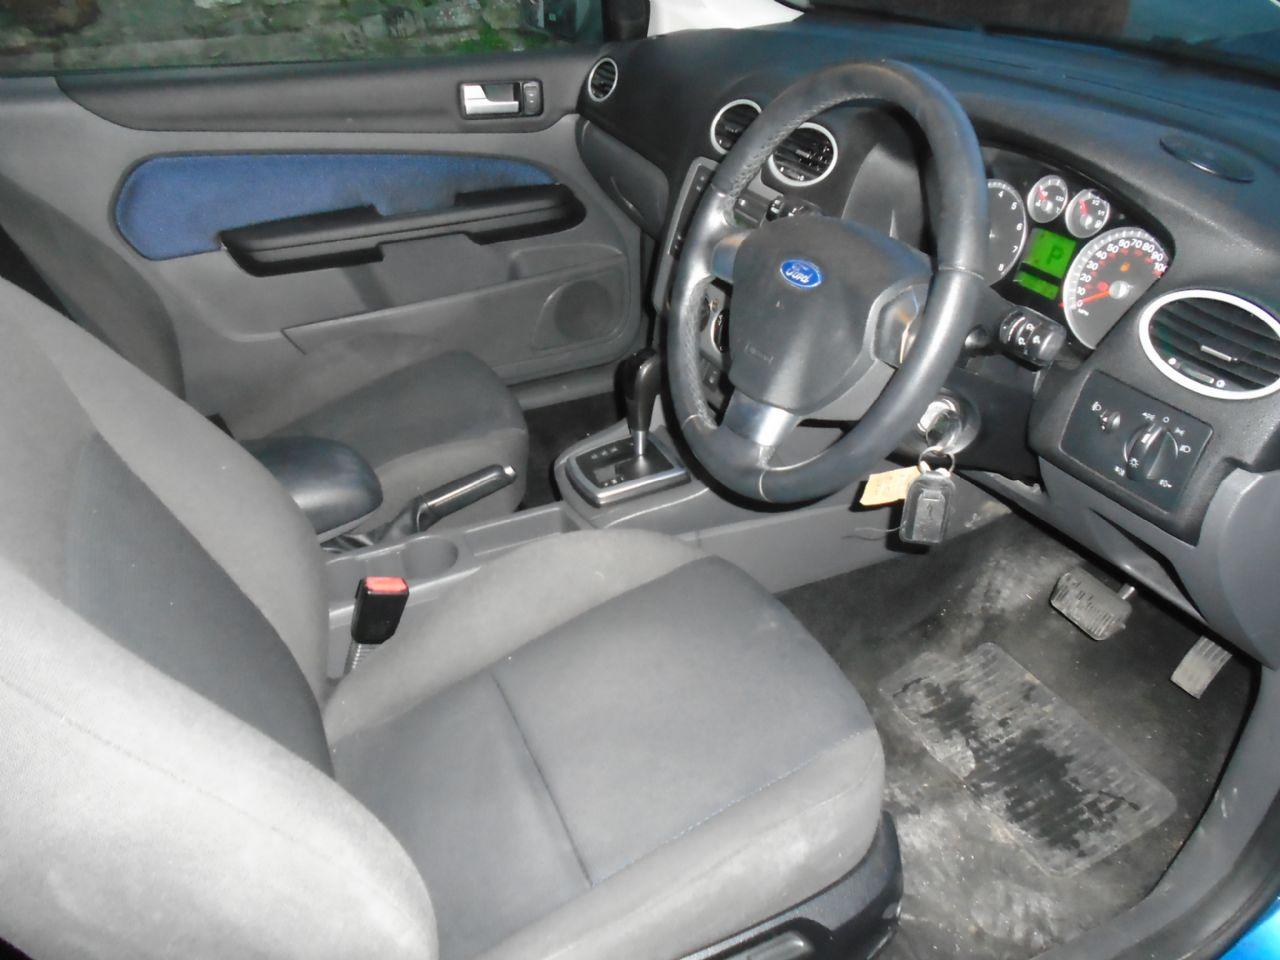 FORD FOCUS 1.6 Zetec Auto - Picture 7